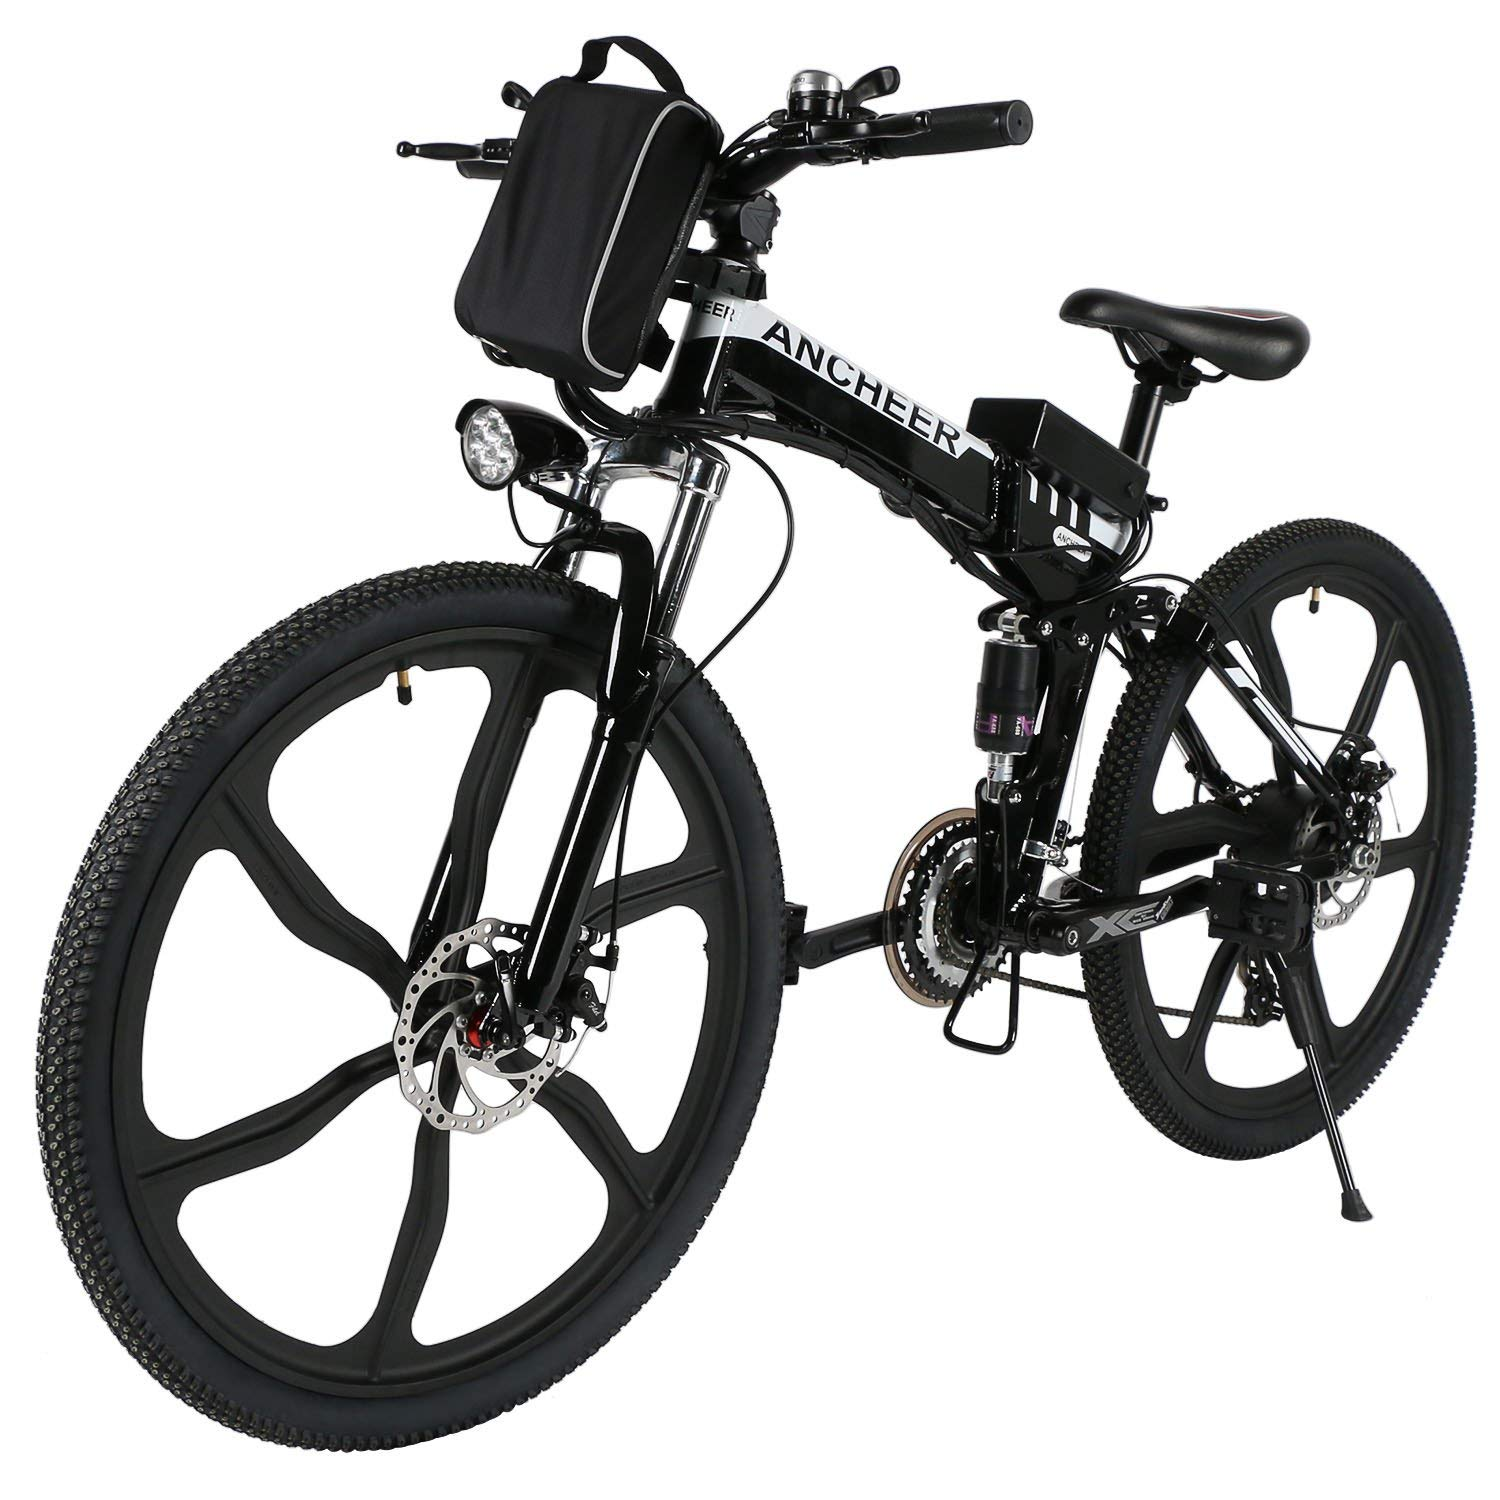 2010's tech power bicycles